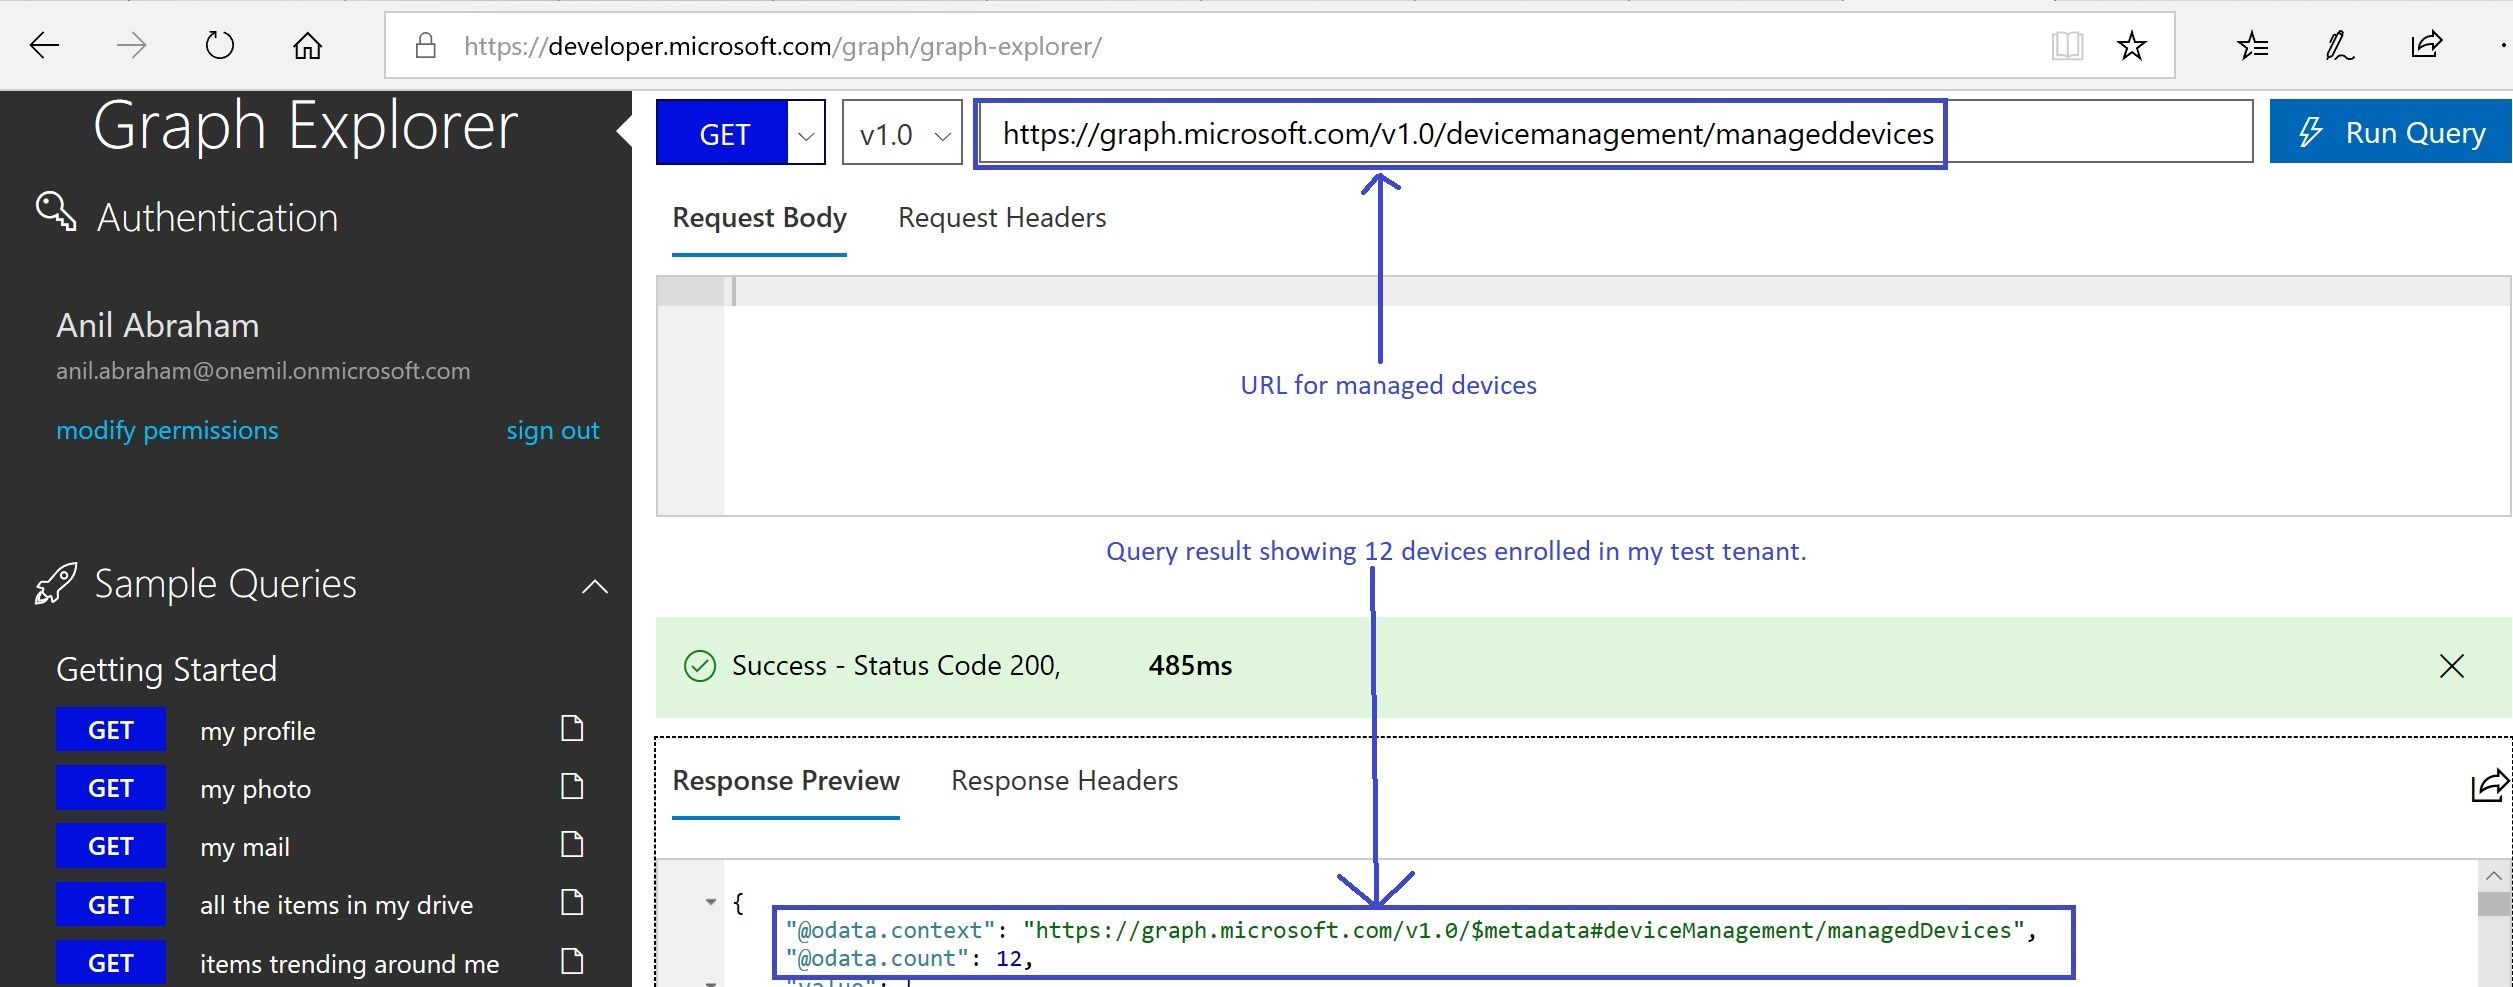 INTUNE: Report All Devices That Are Non-Compliant Because They Are Inactive